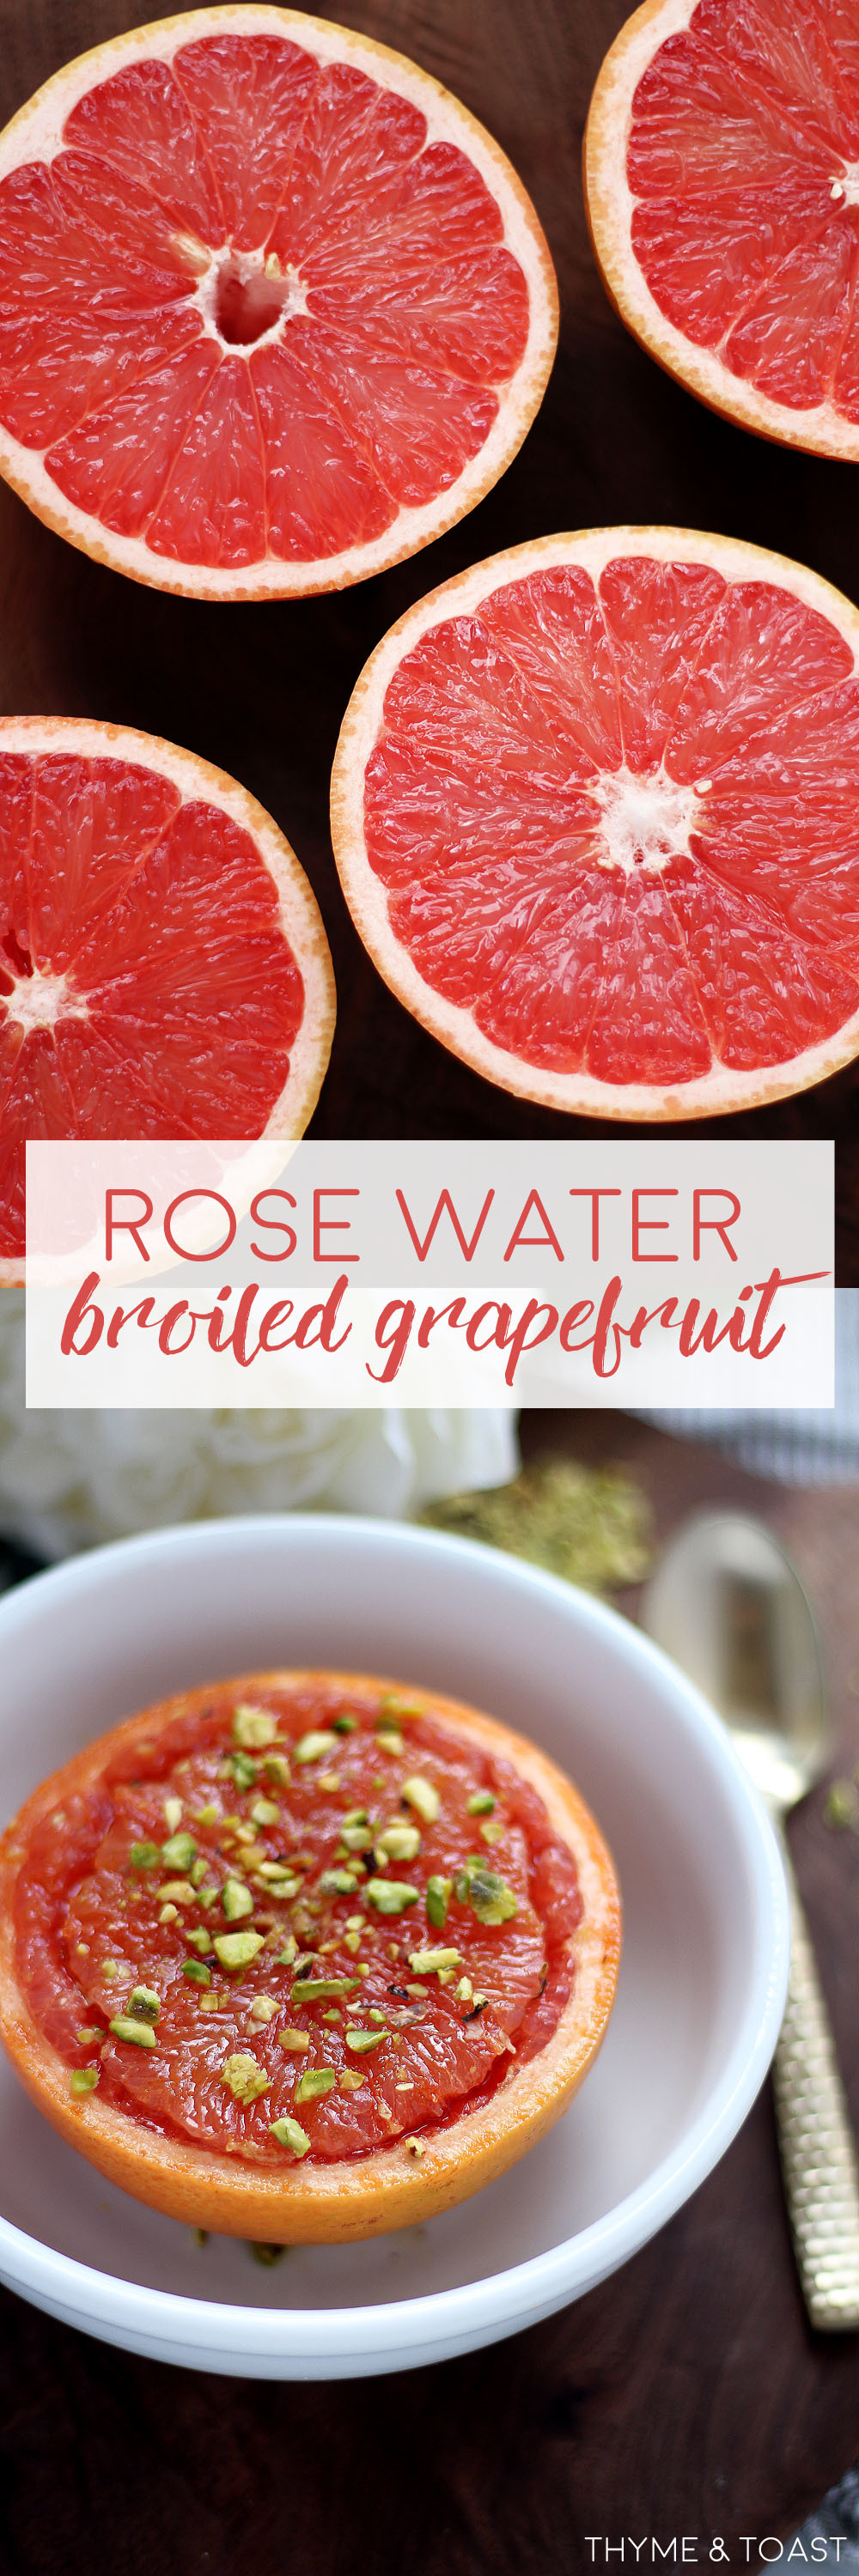 Rose Water Broiled Grapefruit